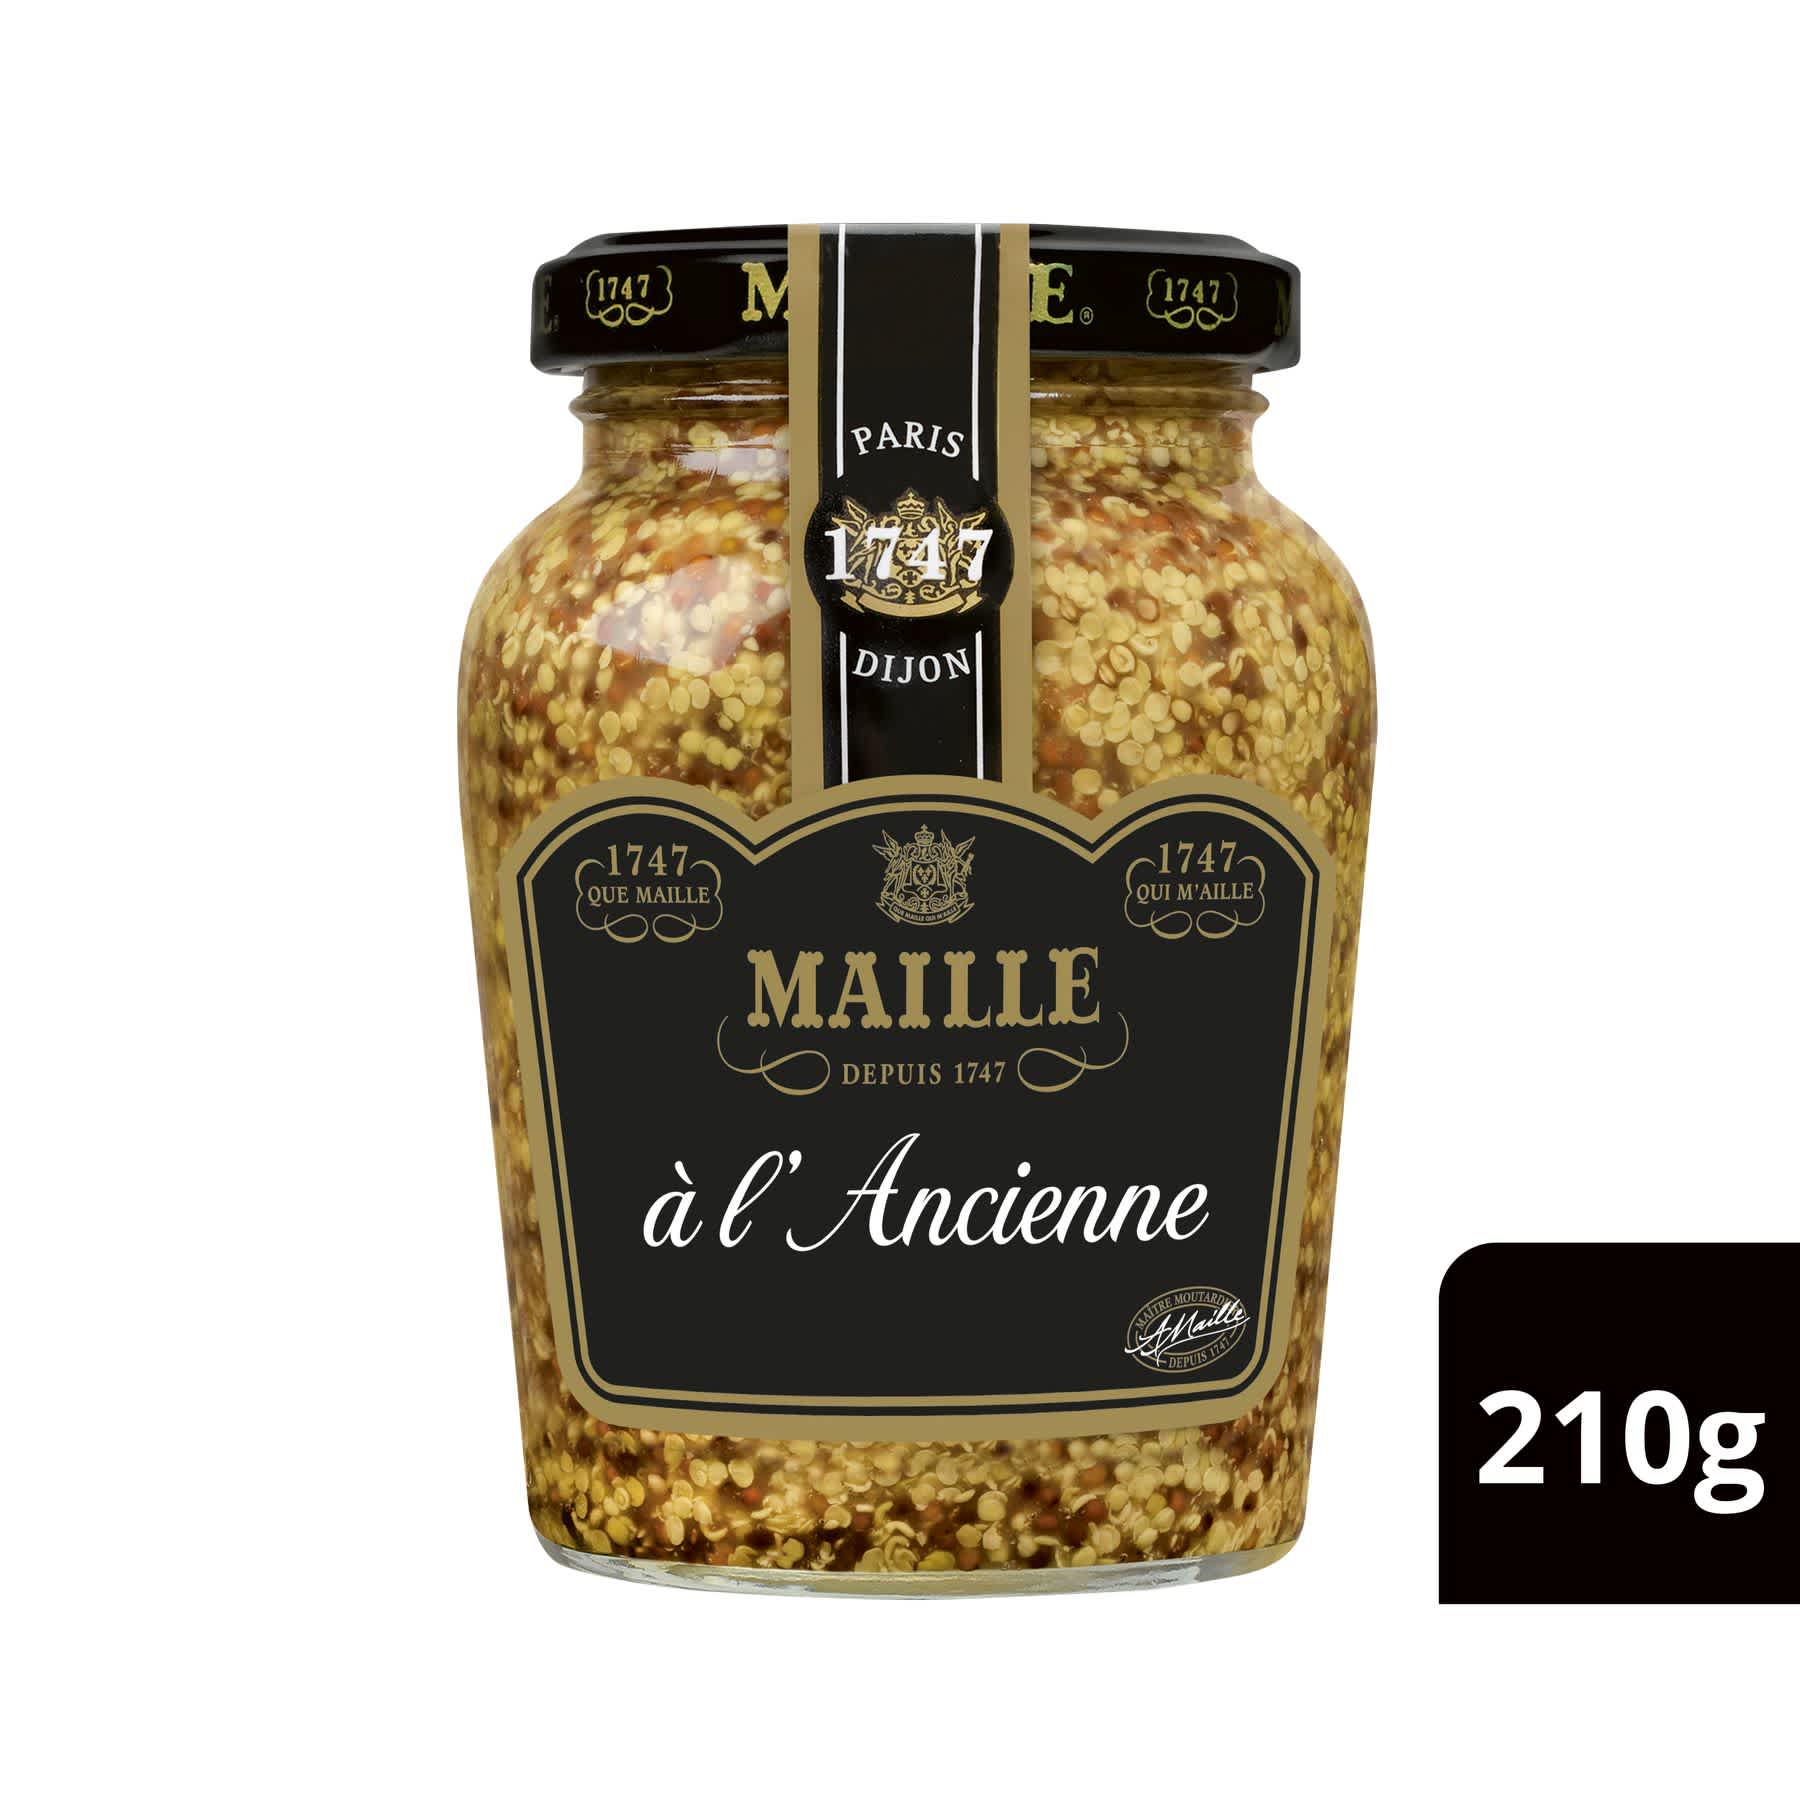 Maille Moutarde a l Ancienne 215g 1